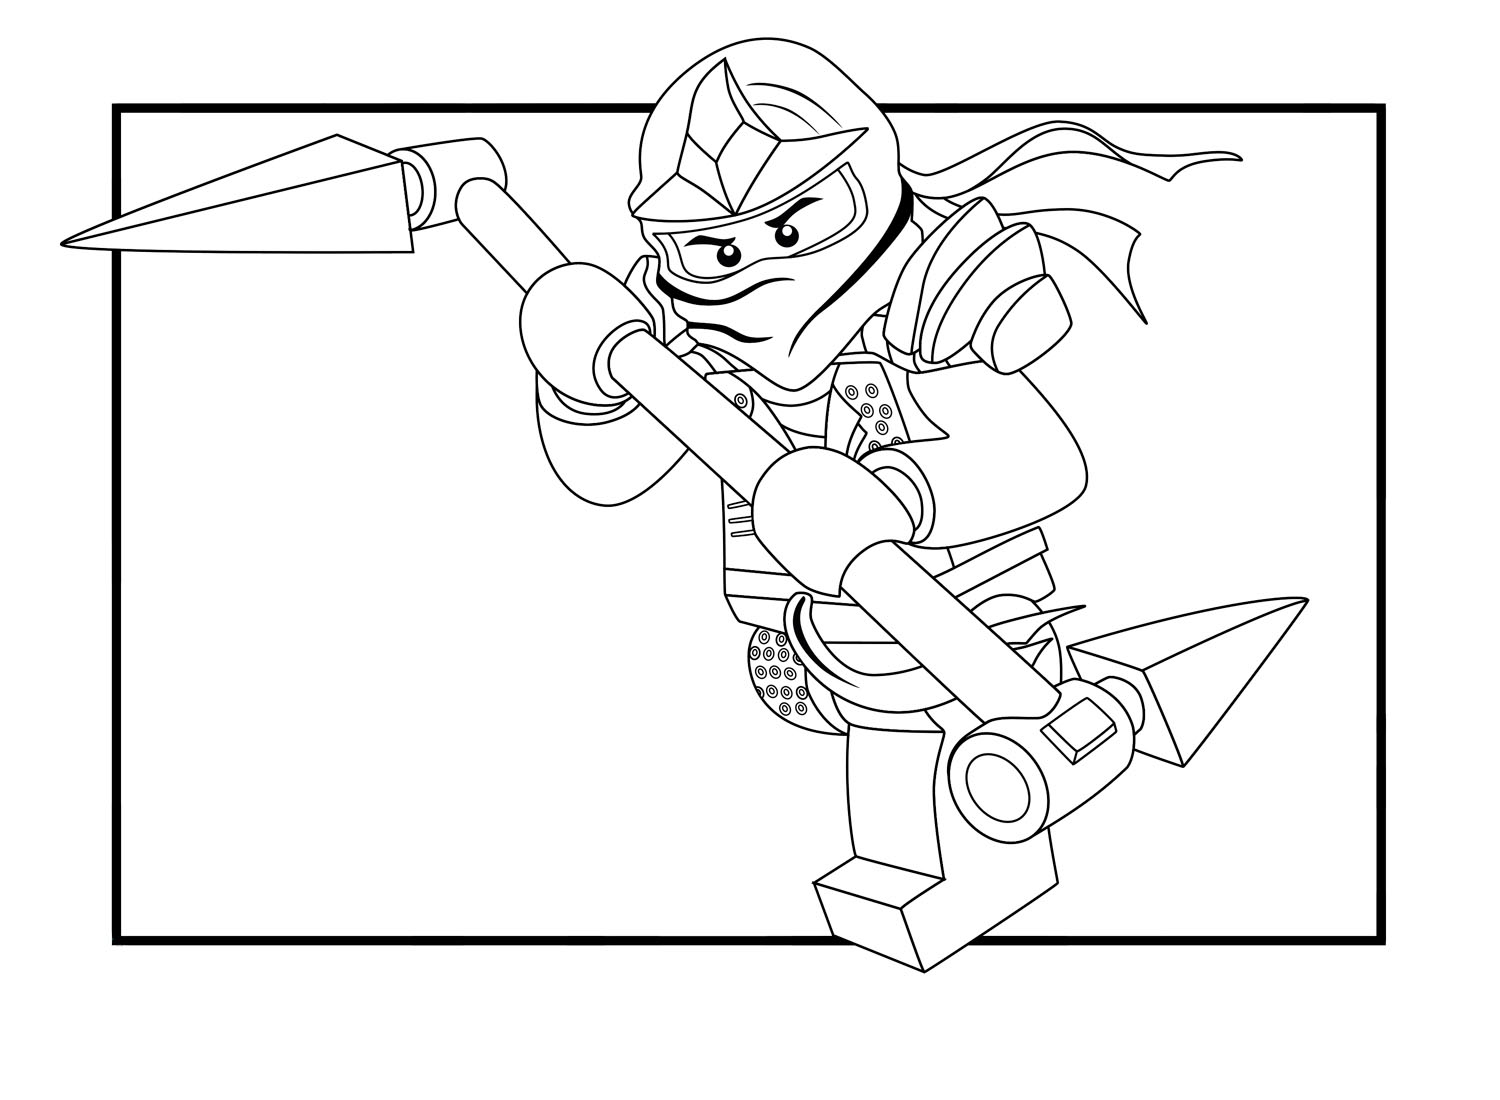 Lego Marvel Coloring Pages To Download And Print For Free: Lego Ninjago Coloring Pages To Download And Print For Free